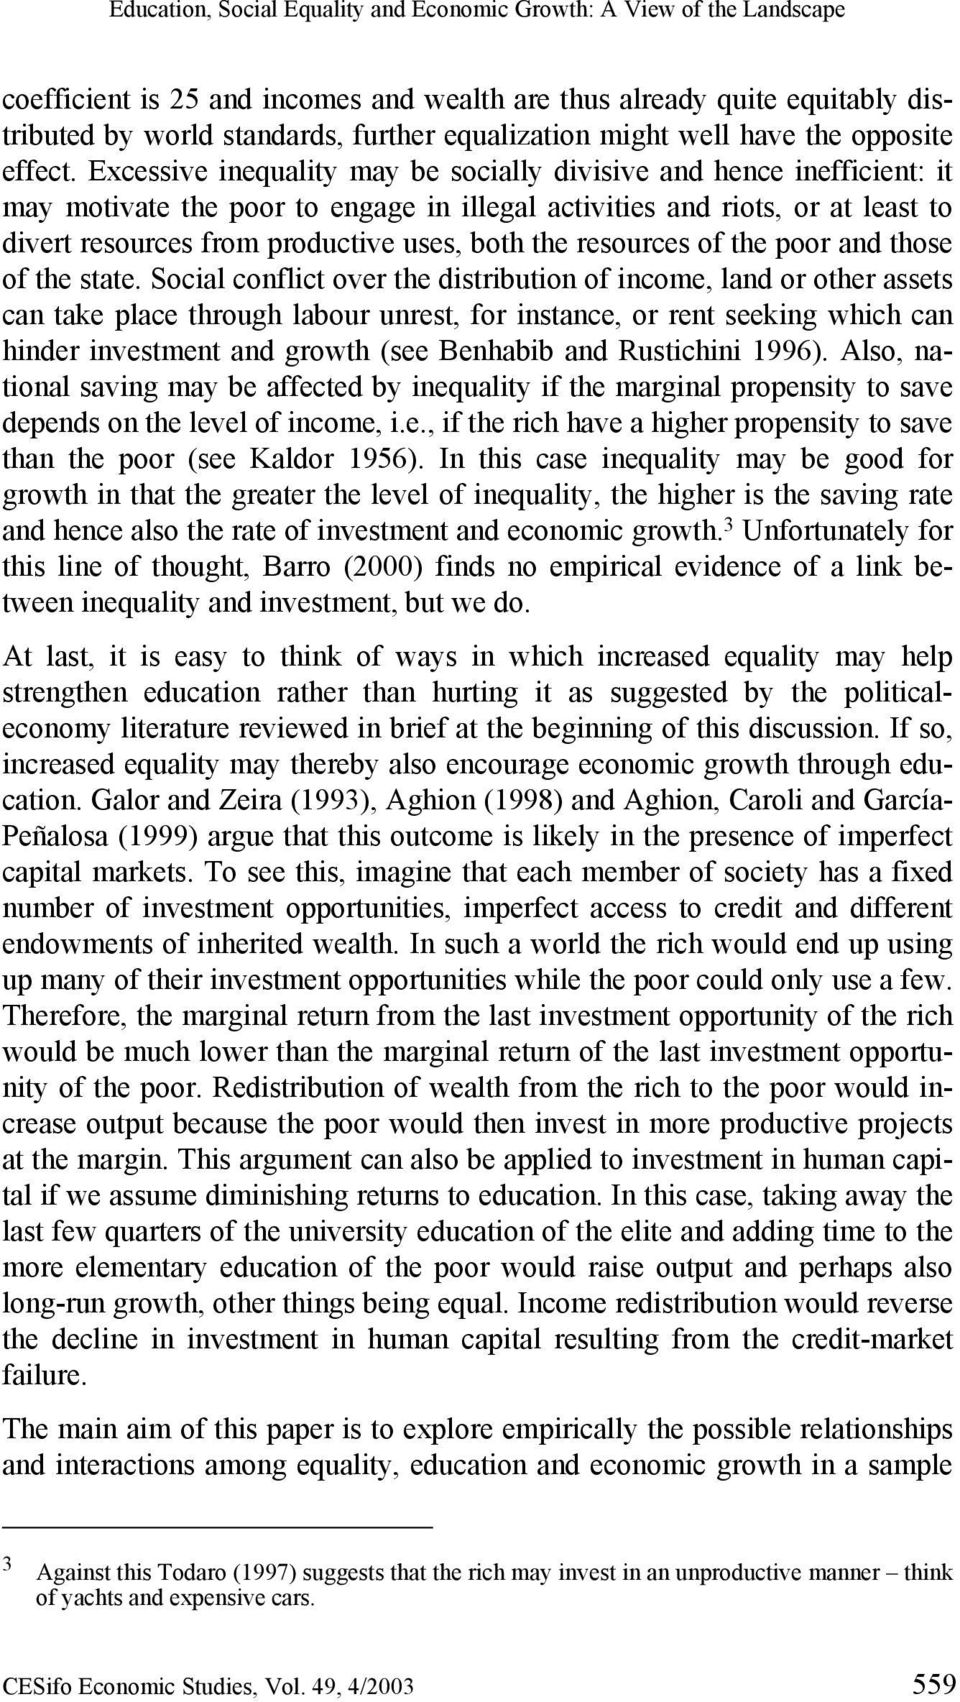 Excessive inequality may be socially divisive and hence inefficient: it may motivate the poor to engage in illegal activities and riots, or at least to divert resources from productive uses, both the